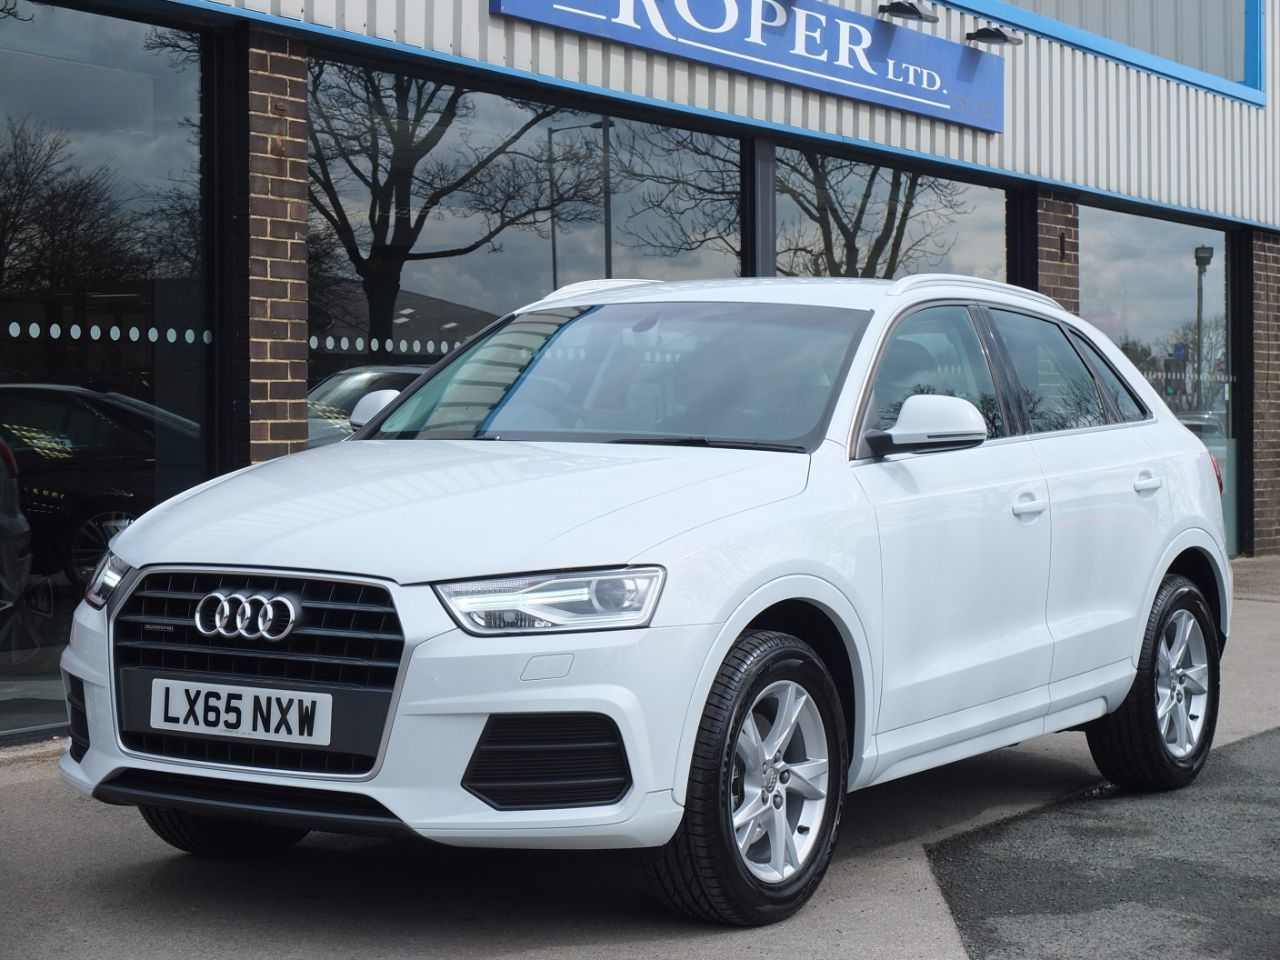 Audi Q3 2.0 TDI Quattro SE S Tronic 150ps Estate Diesel Glacier White MetallicAudi Q3 2.0 TDI Quattro SE S Tronic 150ps Estate Diesel Glacier White Metallic at fa Roper Ltd Bradford